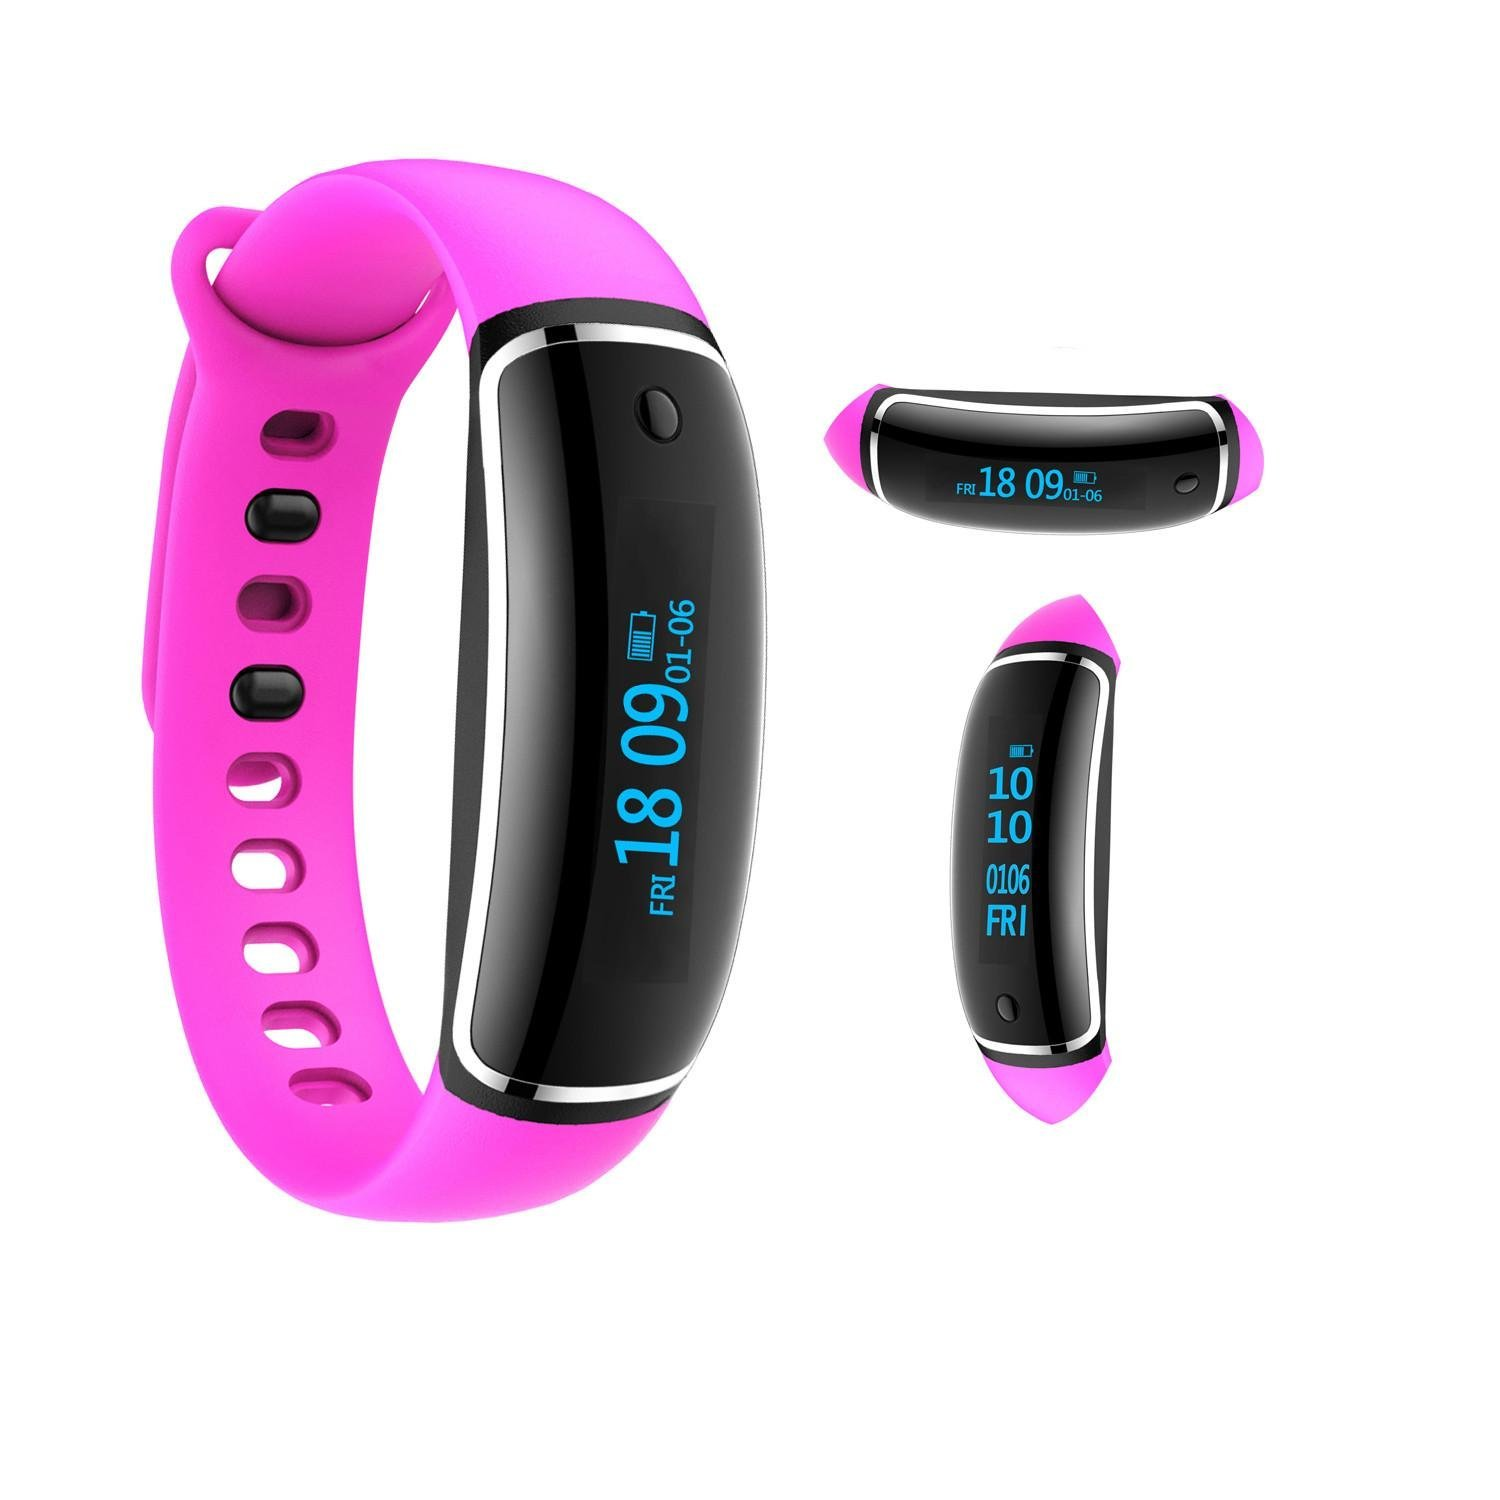 Kobwa Heart Rate Monitor Fitness Tracker Watch, Kobwa IP67 Waterproof Smart Bluetooth 4.0 Activity Tracker With Steps Tracker, Cycling Mode And Calls Messages Vibration For IOS Andriod